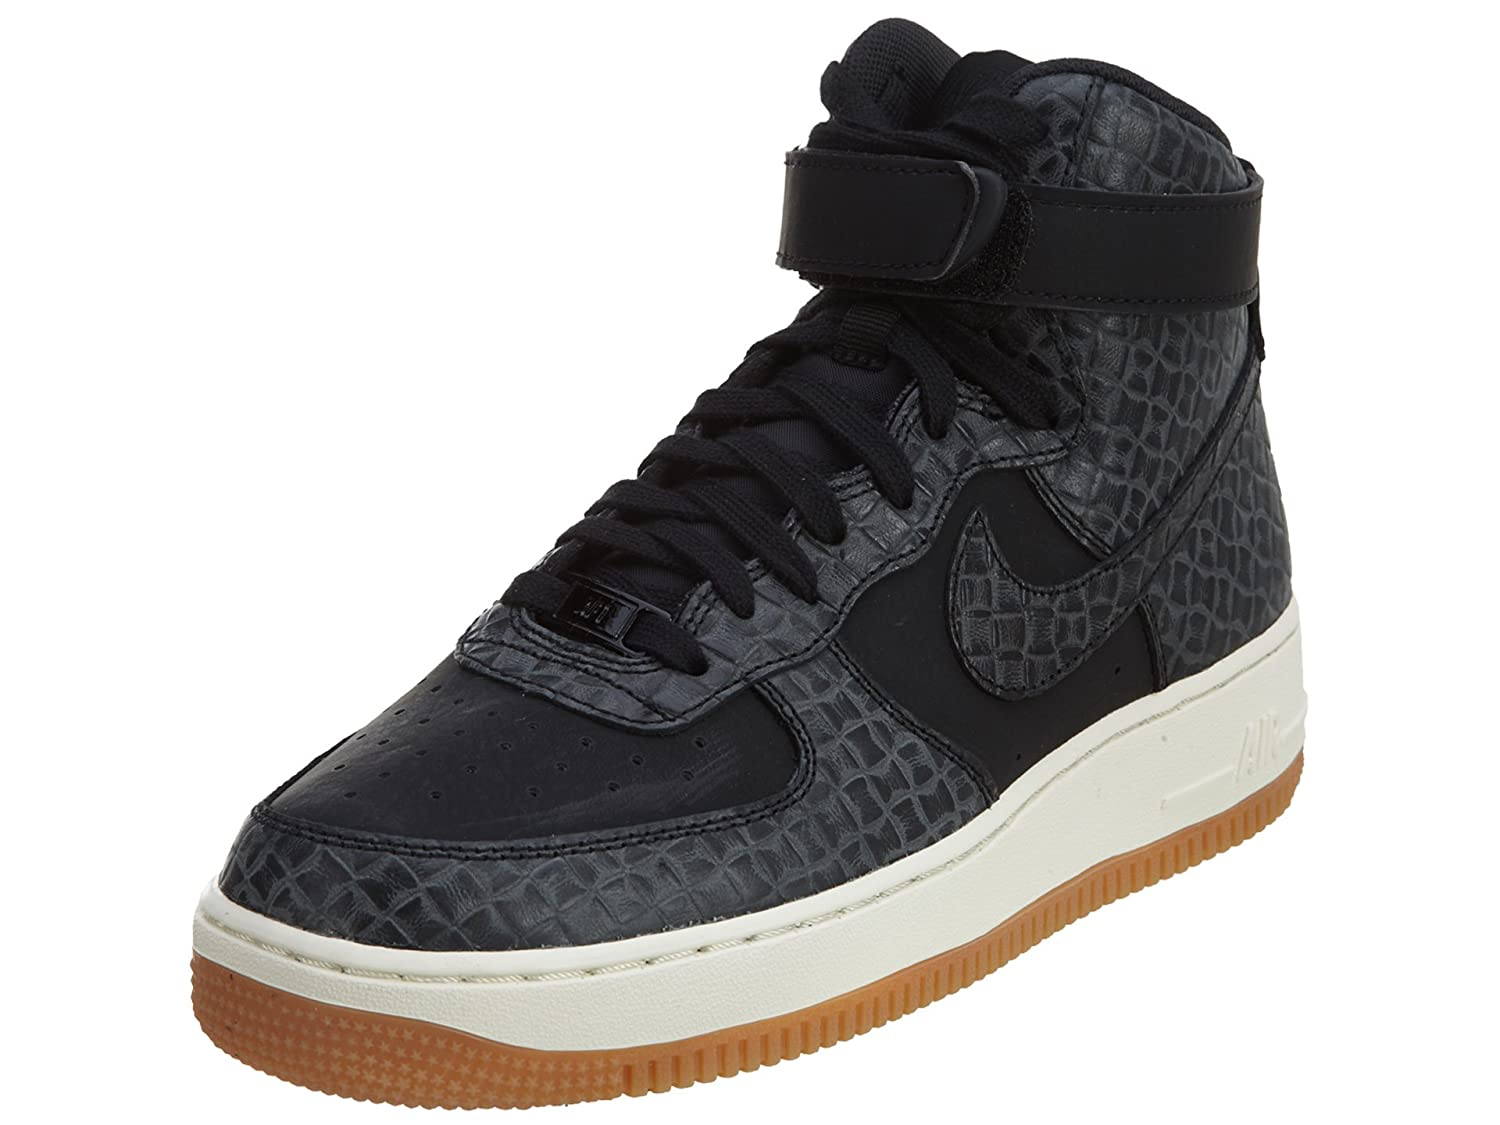 Nike Women's Air Force 1 Hi Premium Black/Black Gum Med Brown Sail Basketball Shoe B01NCVAECD 10.5 B(M) US|Black/Black-gum Med Brown-sail